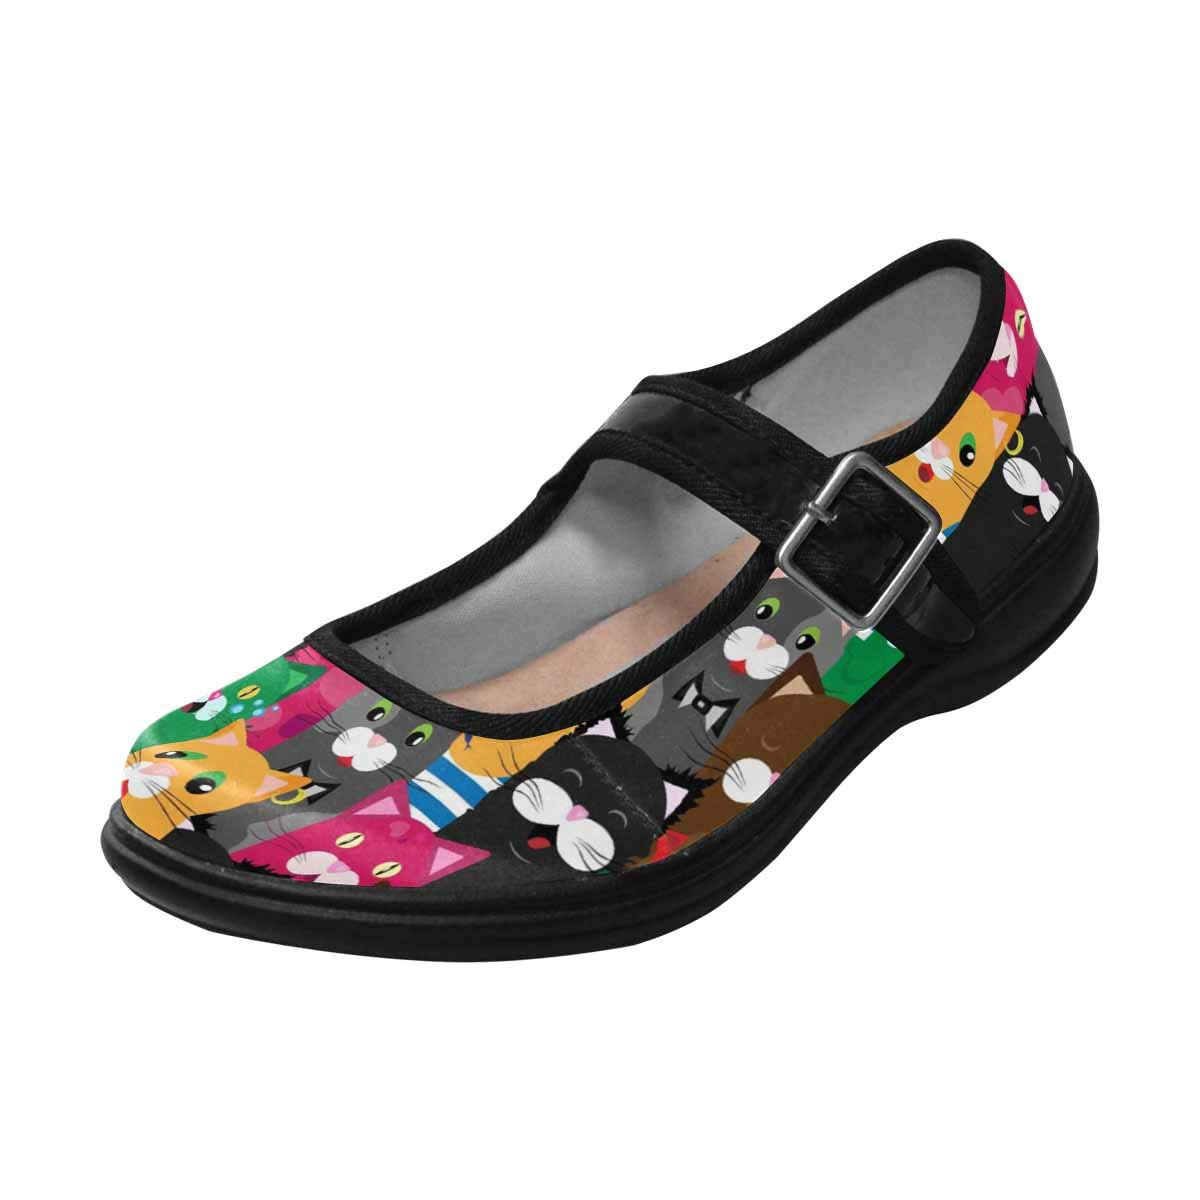 INTERESTPRINT Womens Satin Mary Jane Flats Ballet Shoes Cute Coled Cats